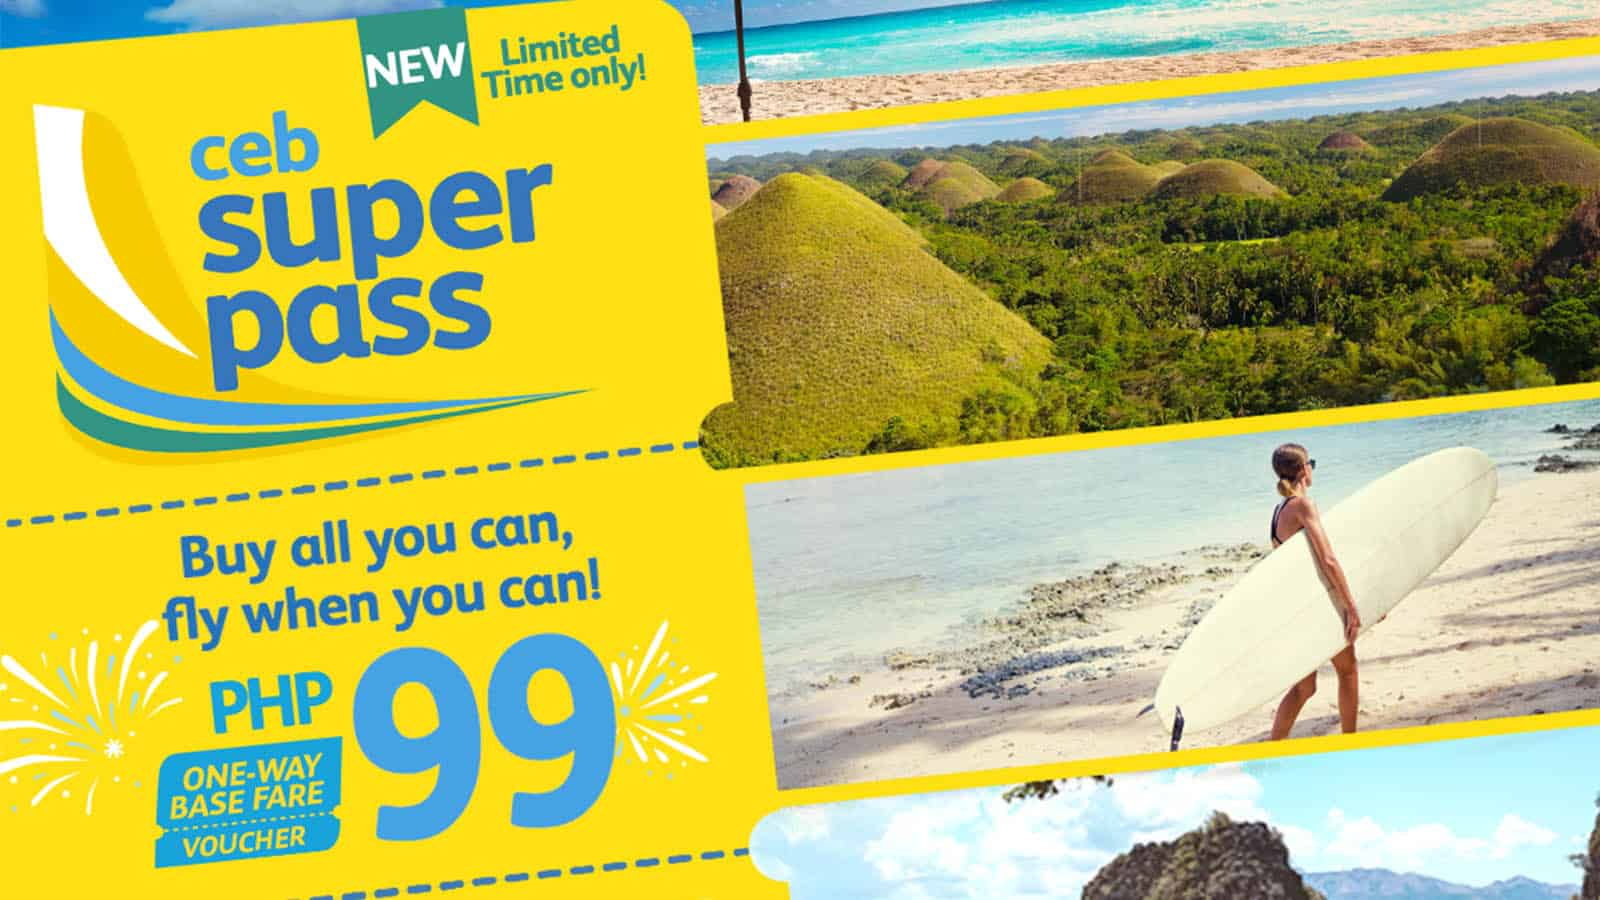 CEB SUPER PASS: How to Purchase & Redeem (Cebu Pacific)